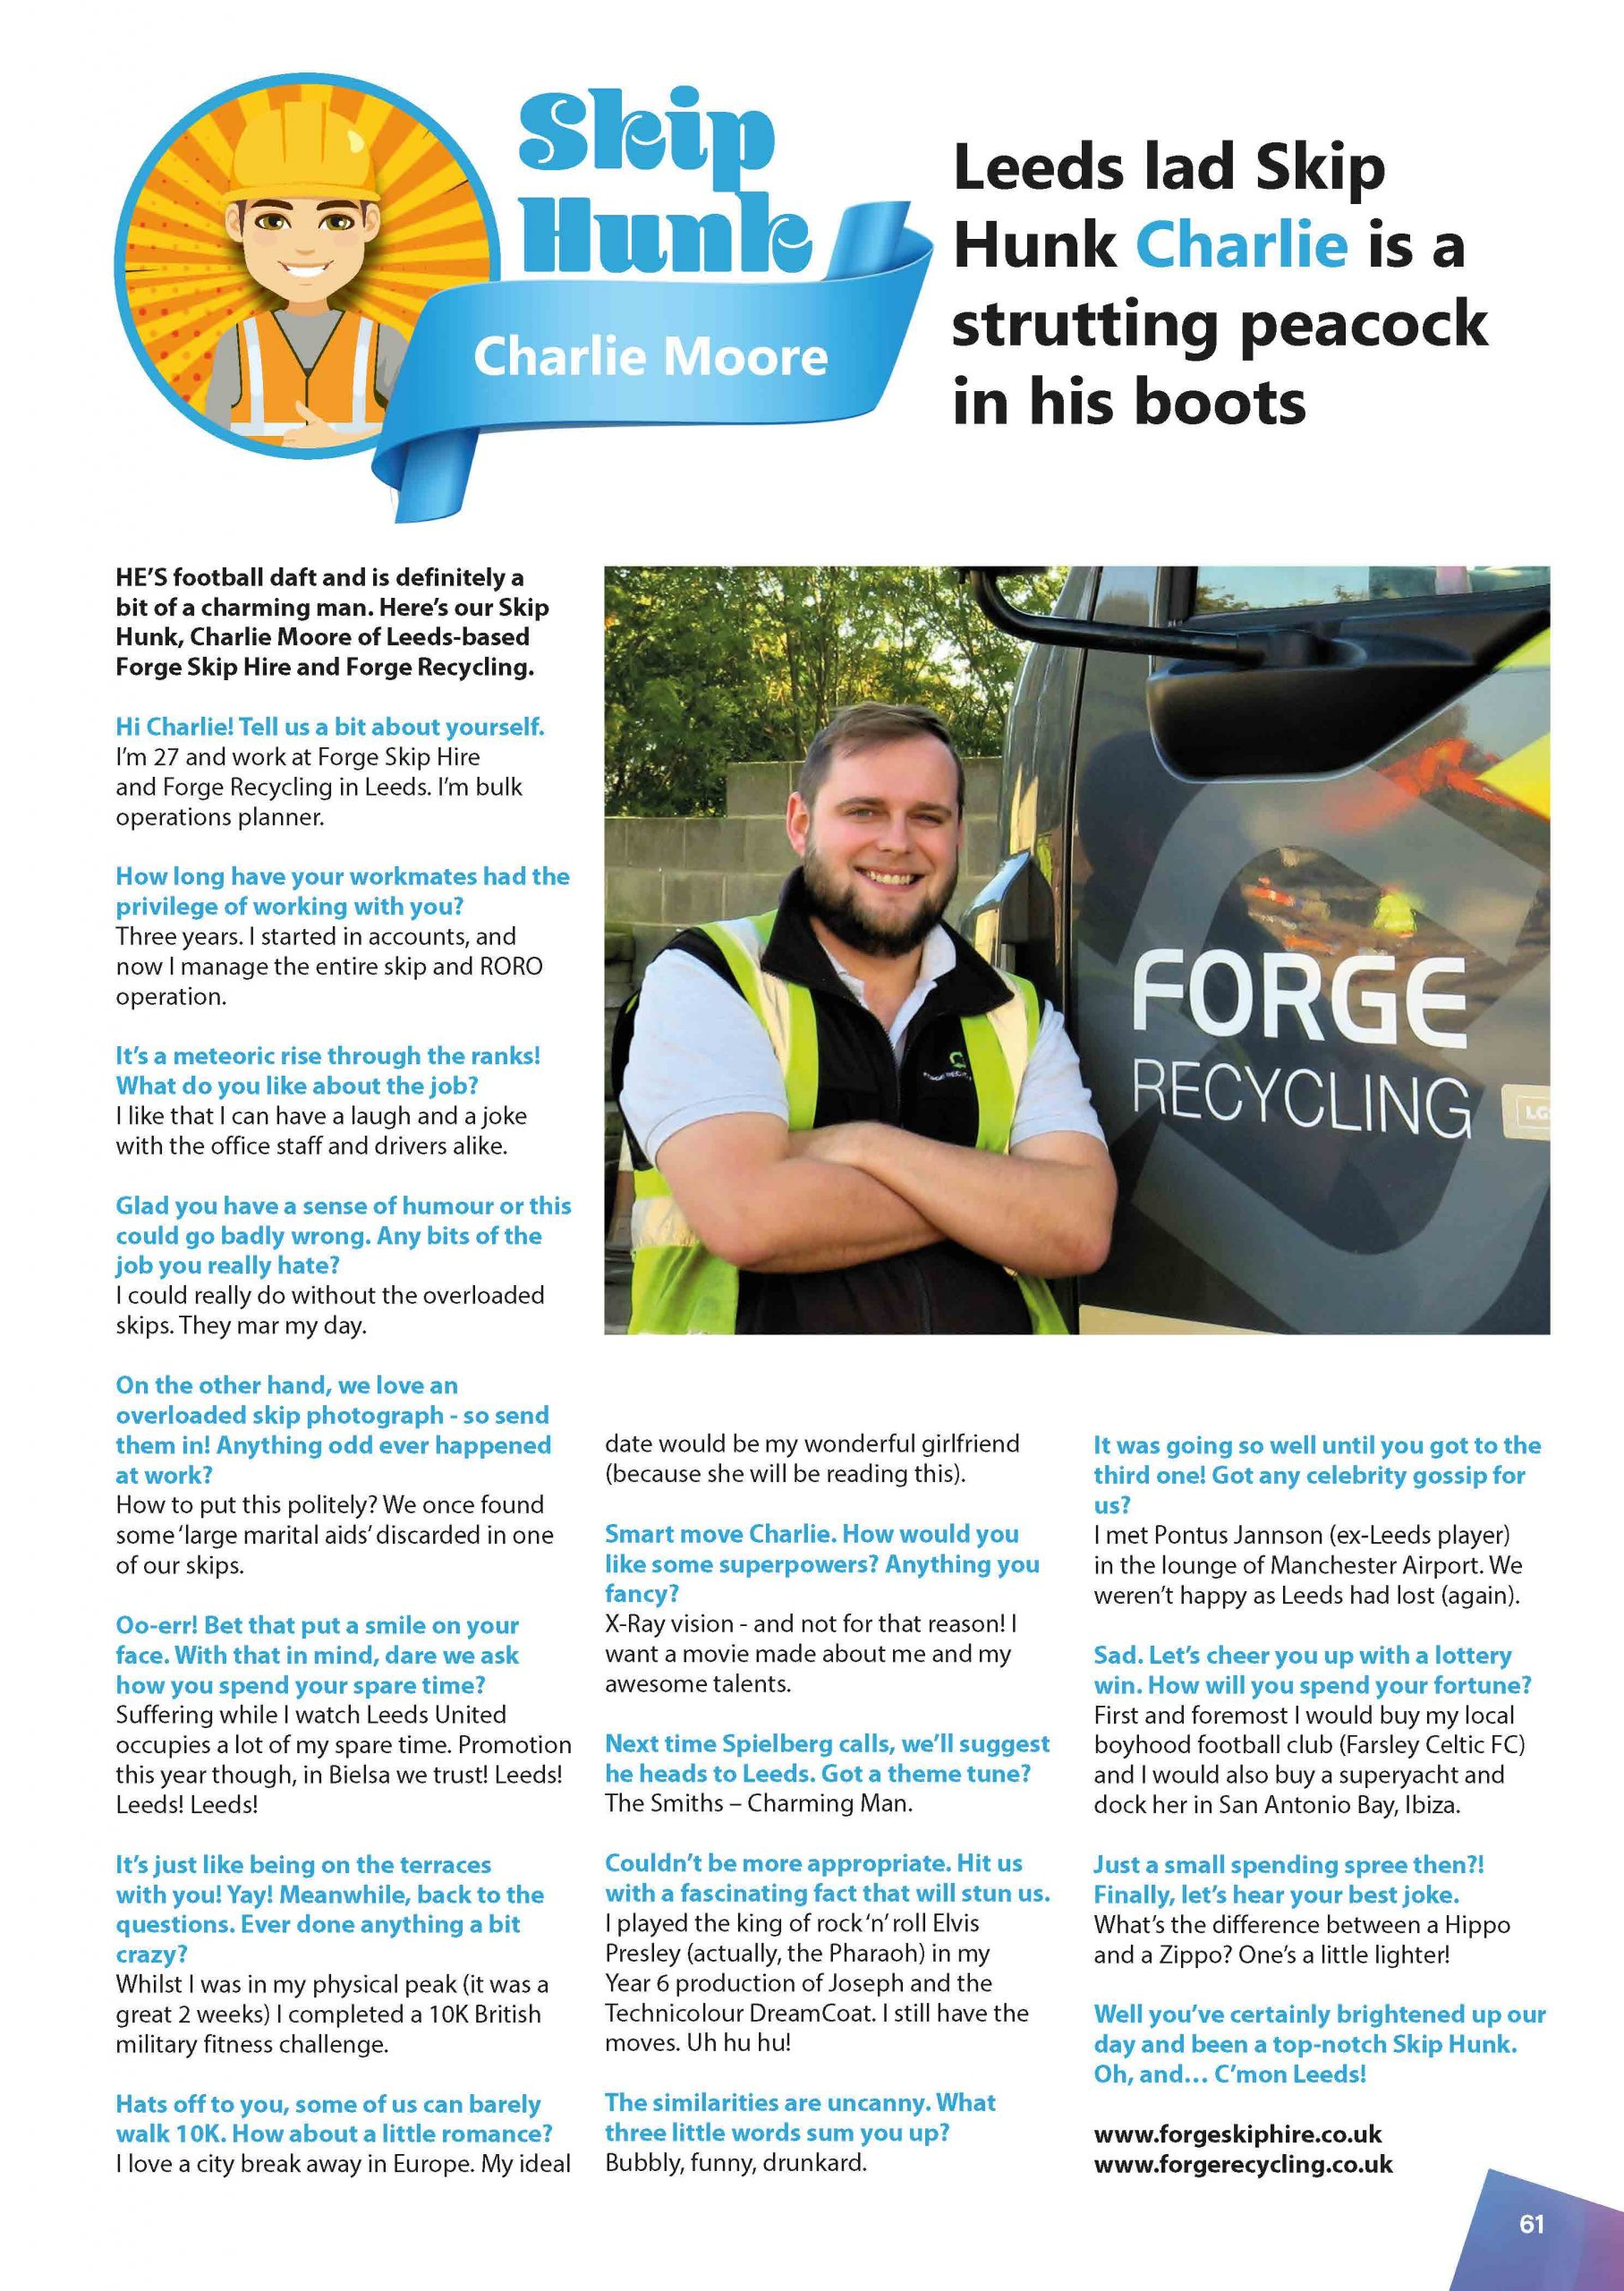 March Skip Hunk: Charlie Moore from Forge Recycling